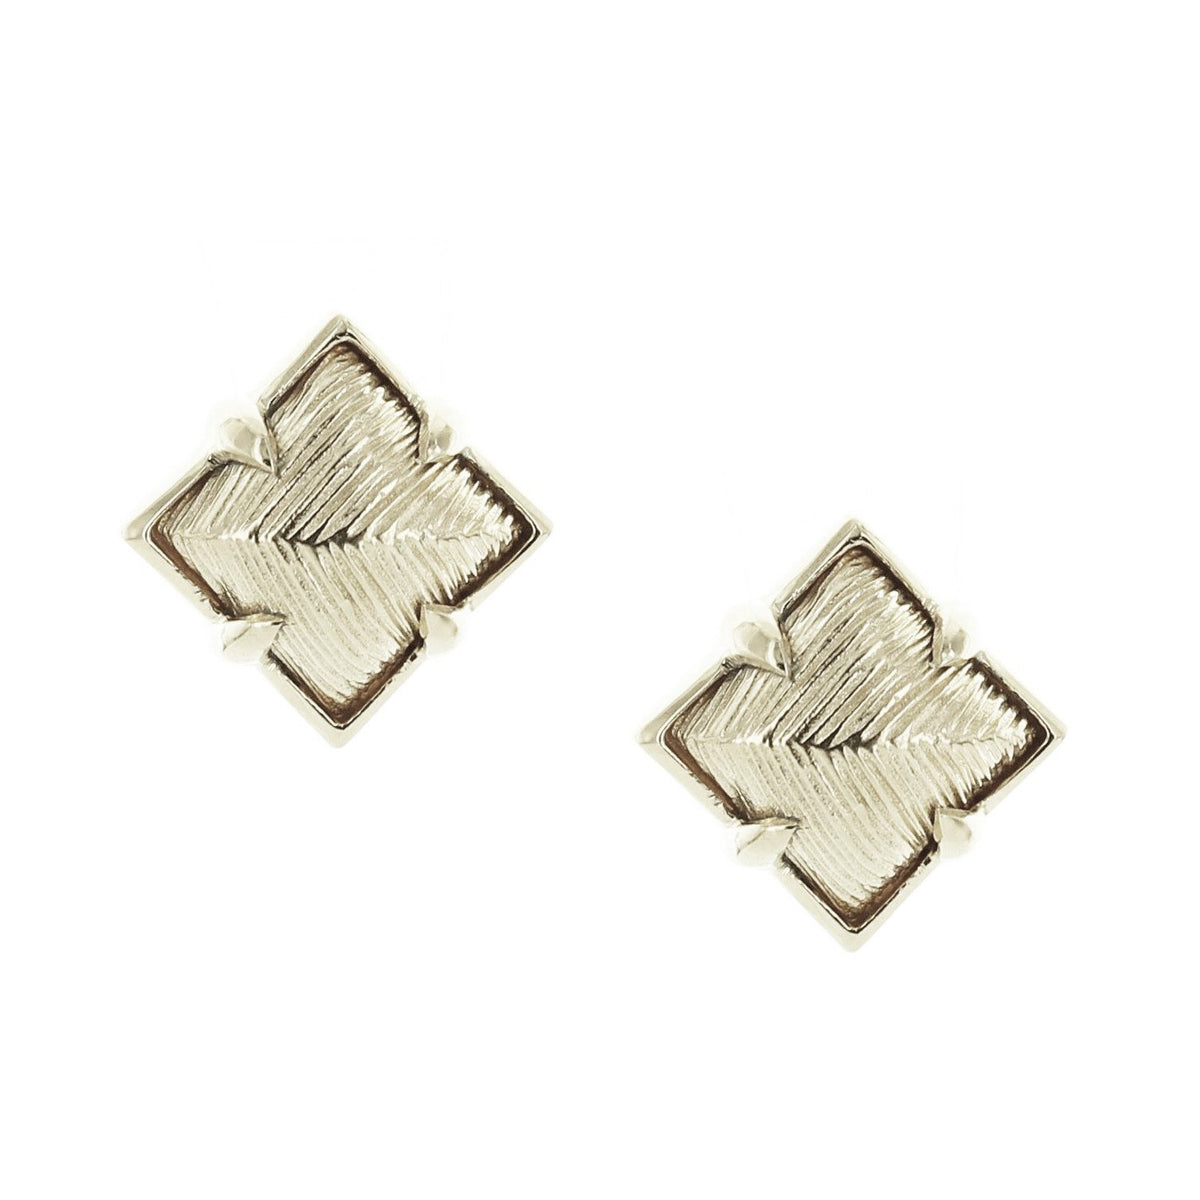 BRAVE DIAMOND STUD EARRINGS - SILVER - SO PRETTY CARA COTTER